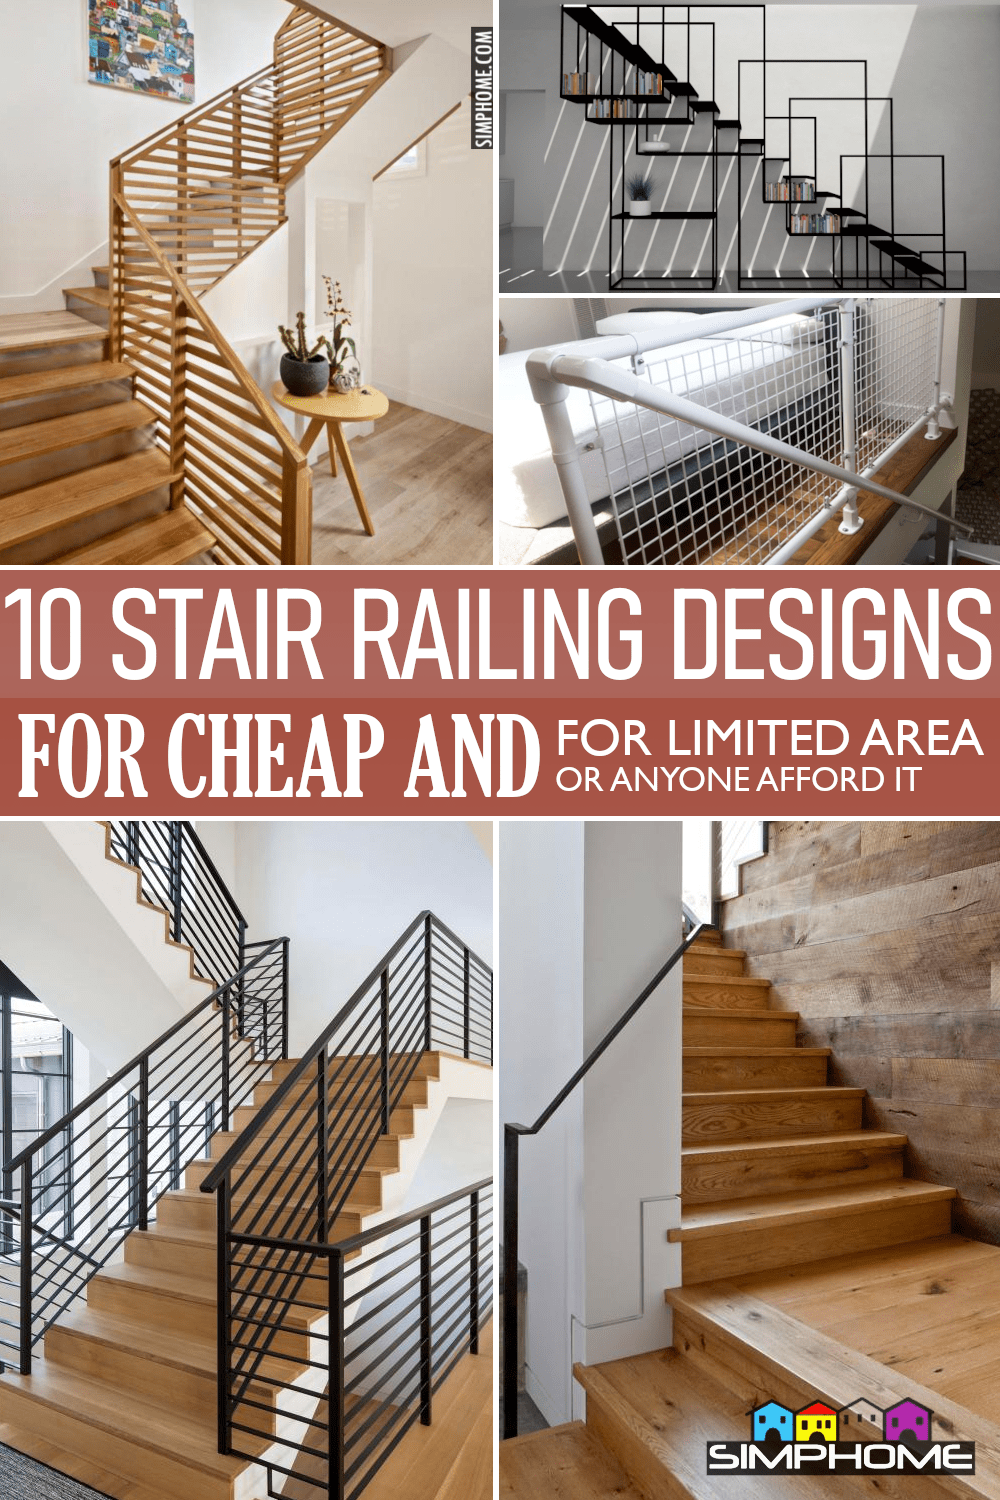 10 Stair Railing Ideas via Simphome.comFeatured